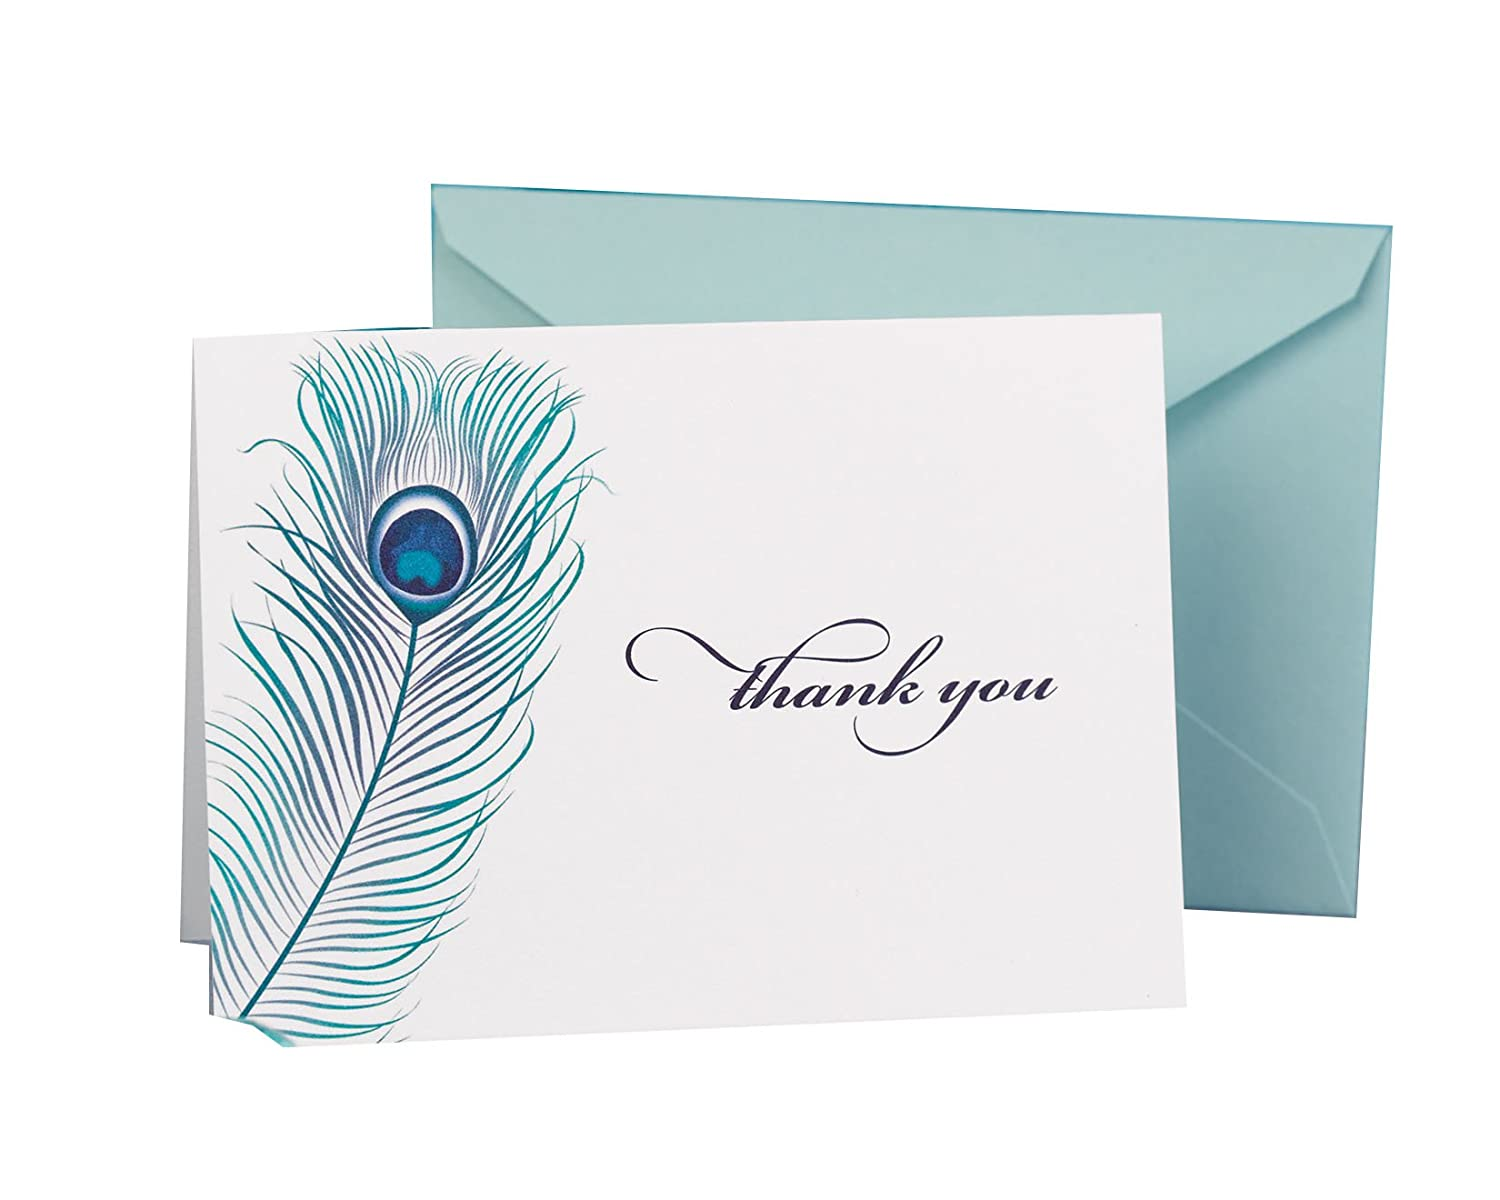 Hortense B. Hewitt Wedding Accessories Thank You Note Cards, Peacock Feather, Pack of 50 11105